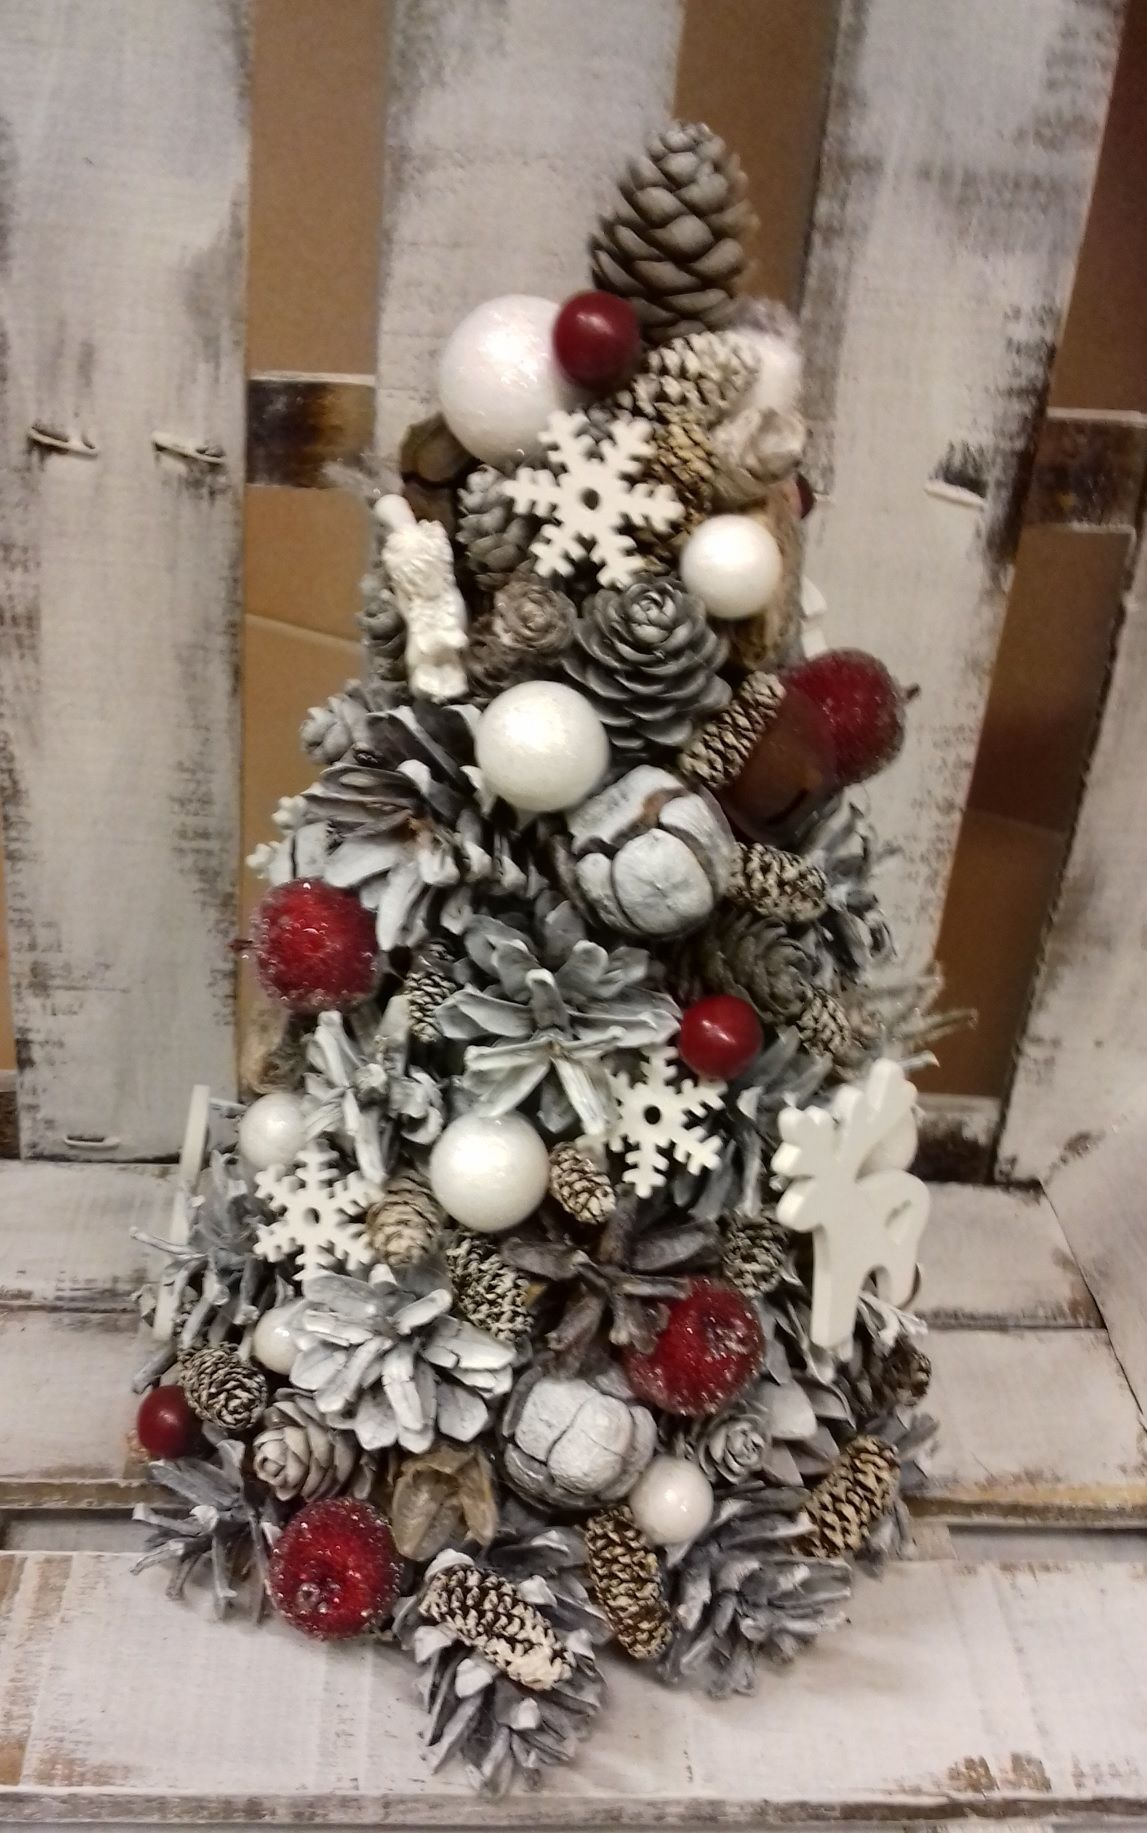 Deco Noel Jardiland 2018 Diy Christmas Decorations 2018 Pinterest Architectural Design